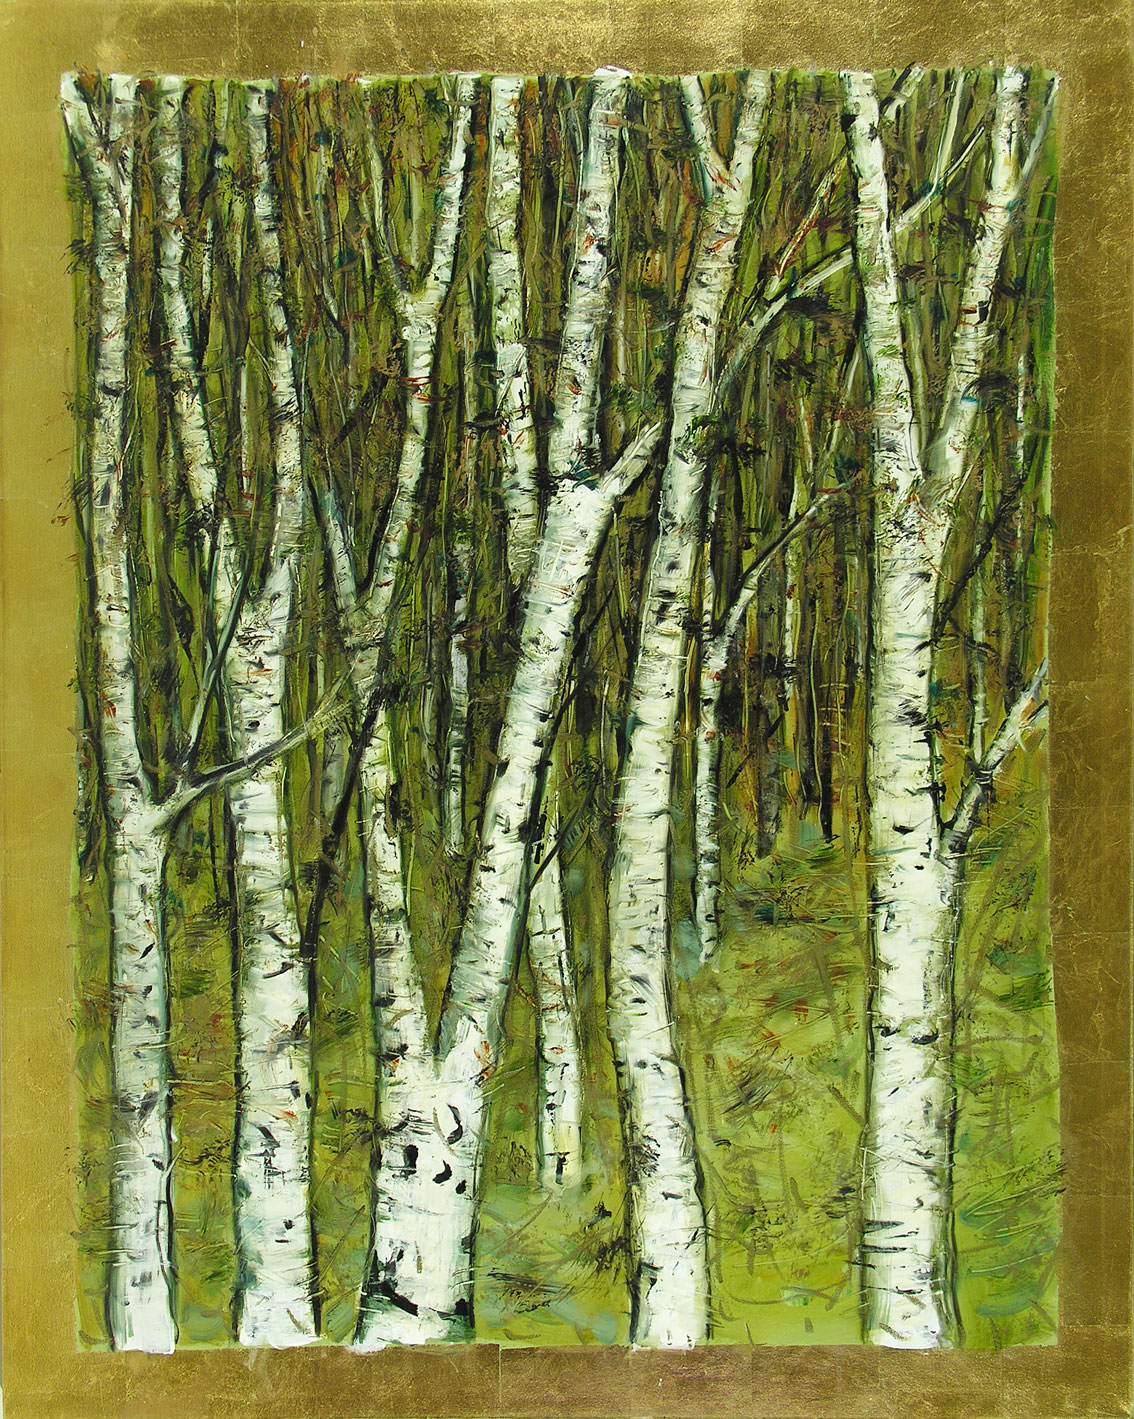 birch-lg-w-gold-leaf02